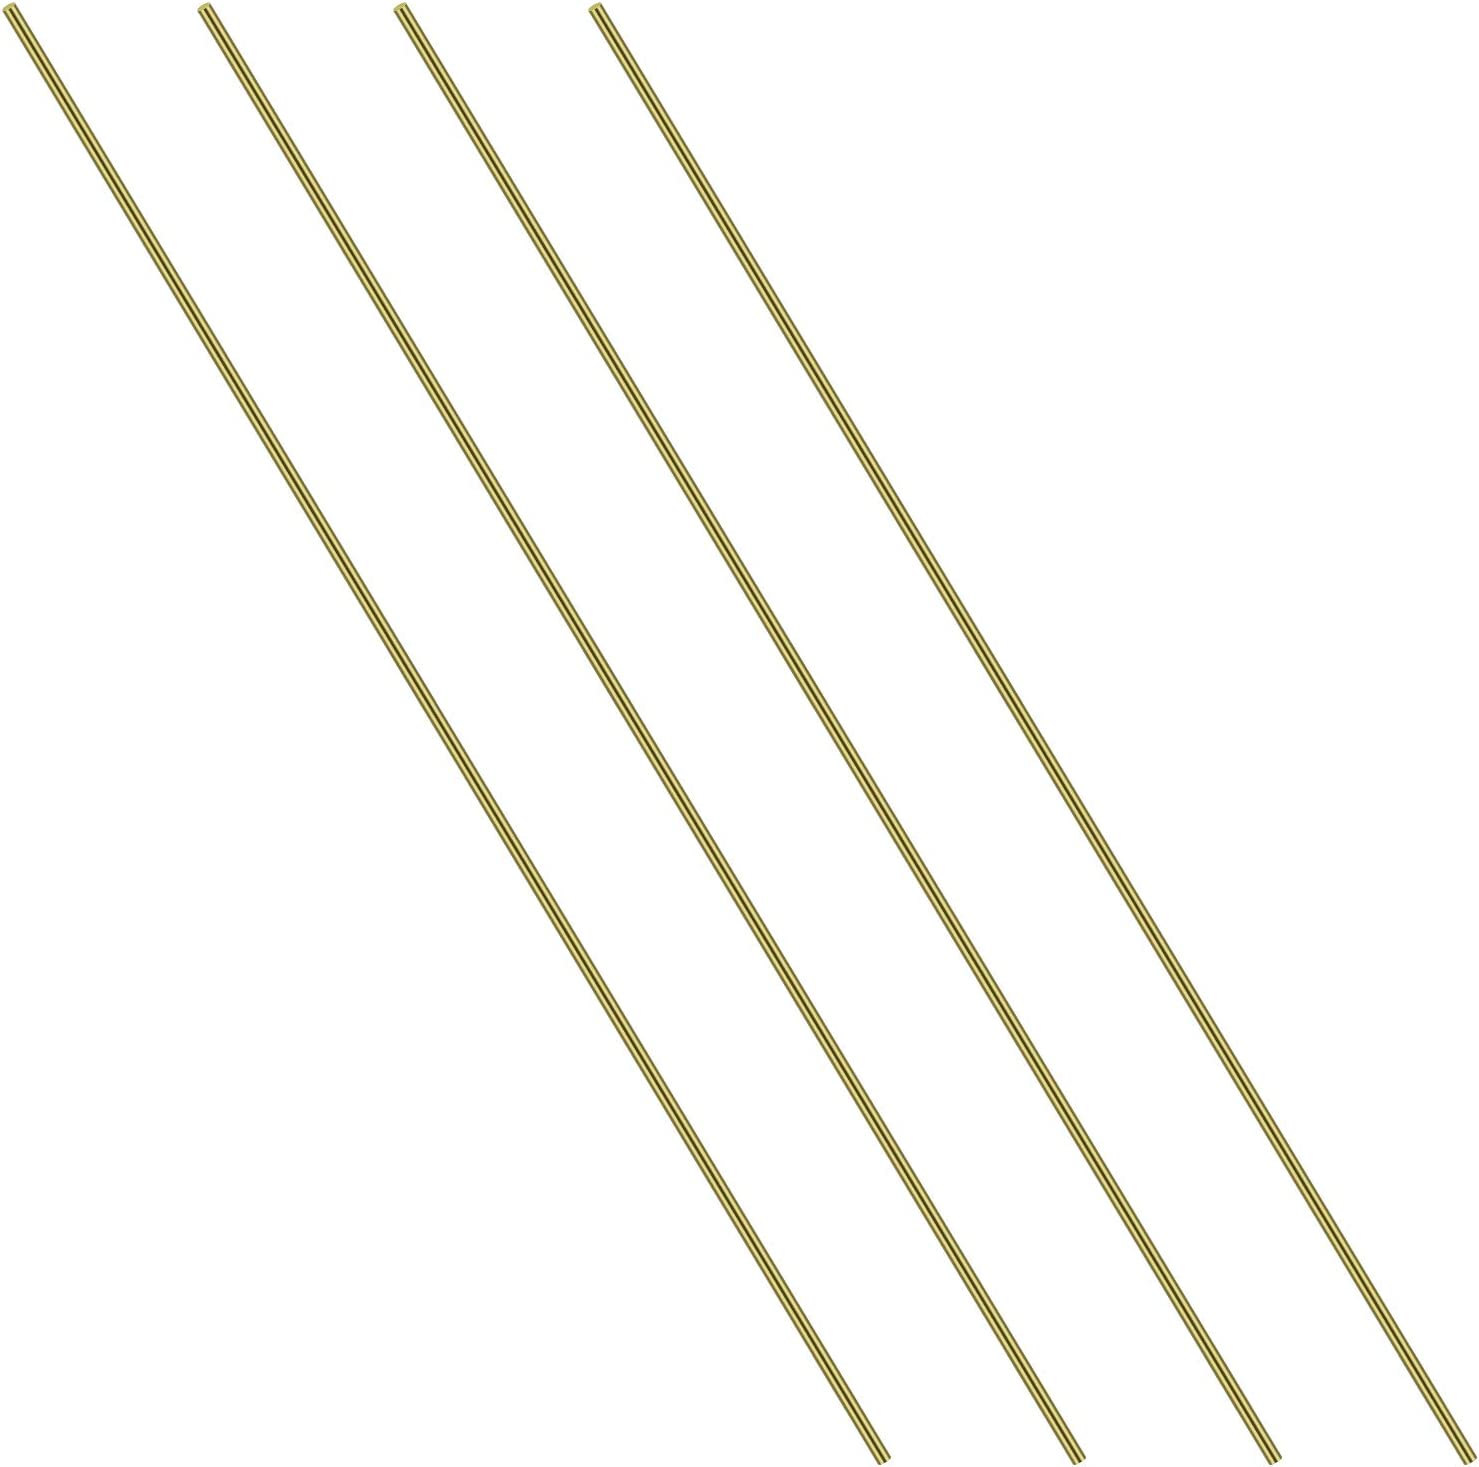 1/8 Inch Brass Round Rod, Favordrory 4PCS Brass Round Rods Lathe Bar Stock, 1/8 Inch in Diameter 14 Inches in Length 61bgMC9vzlL